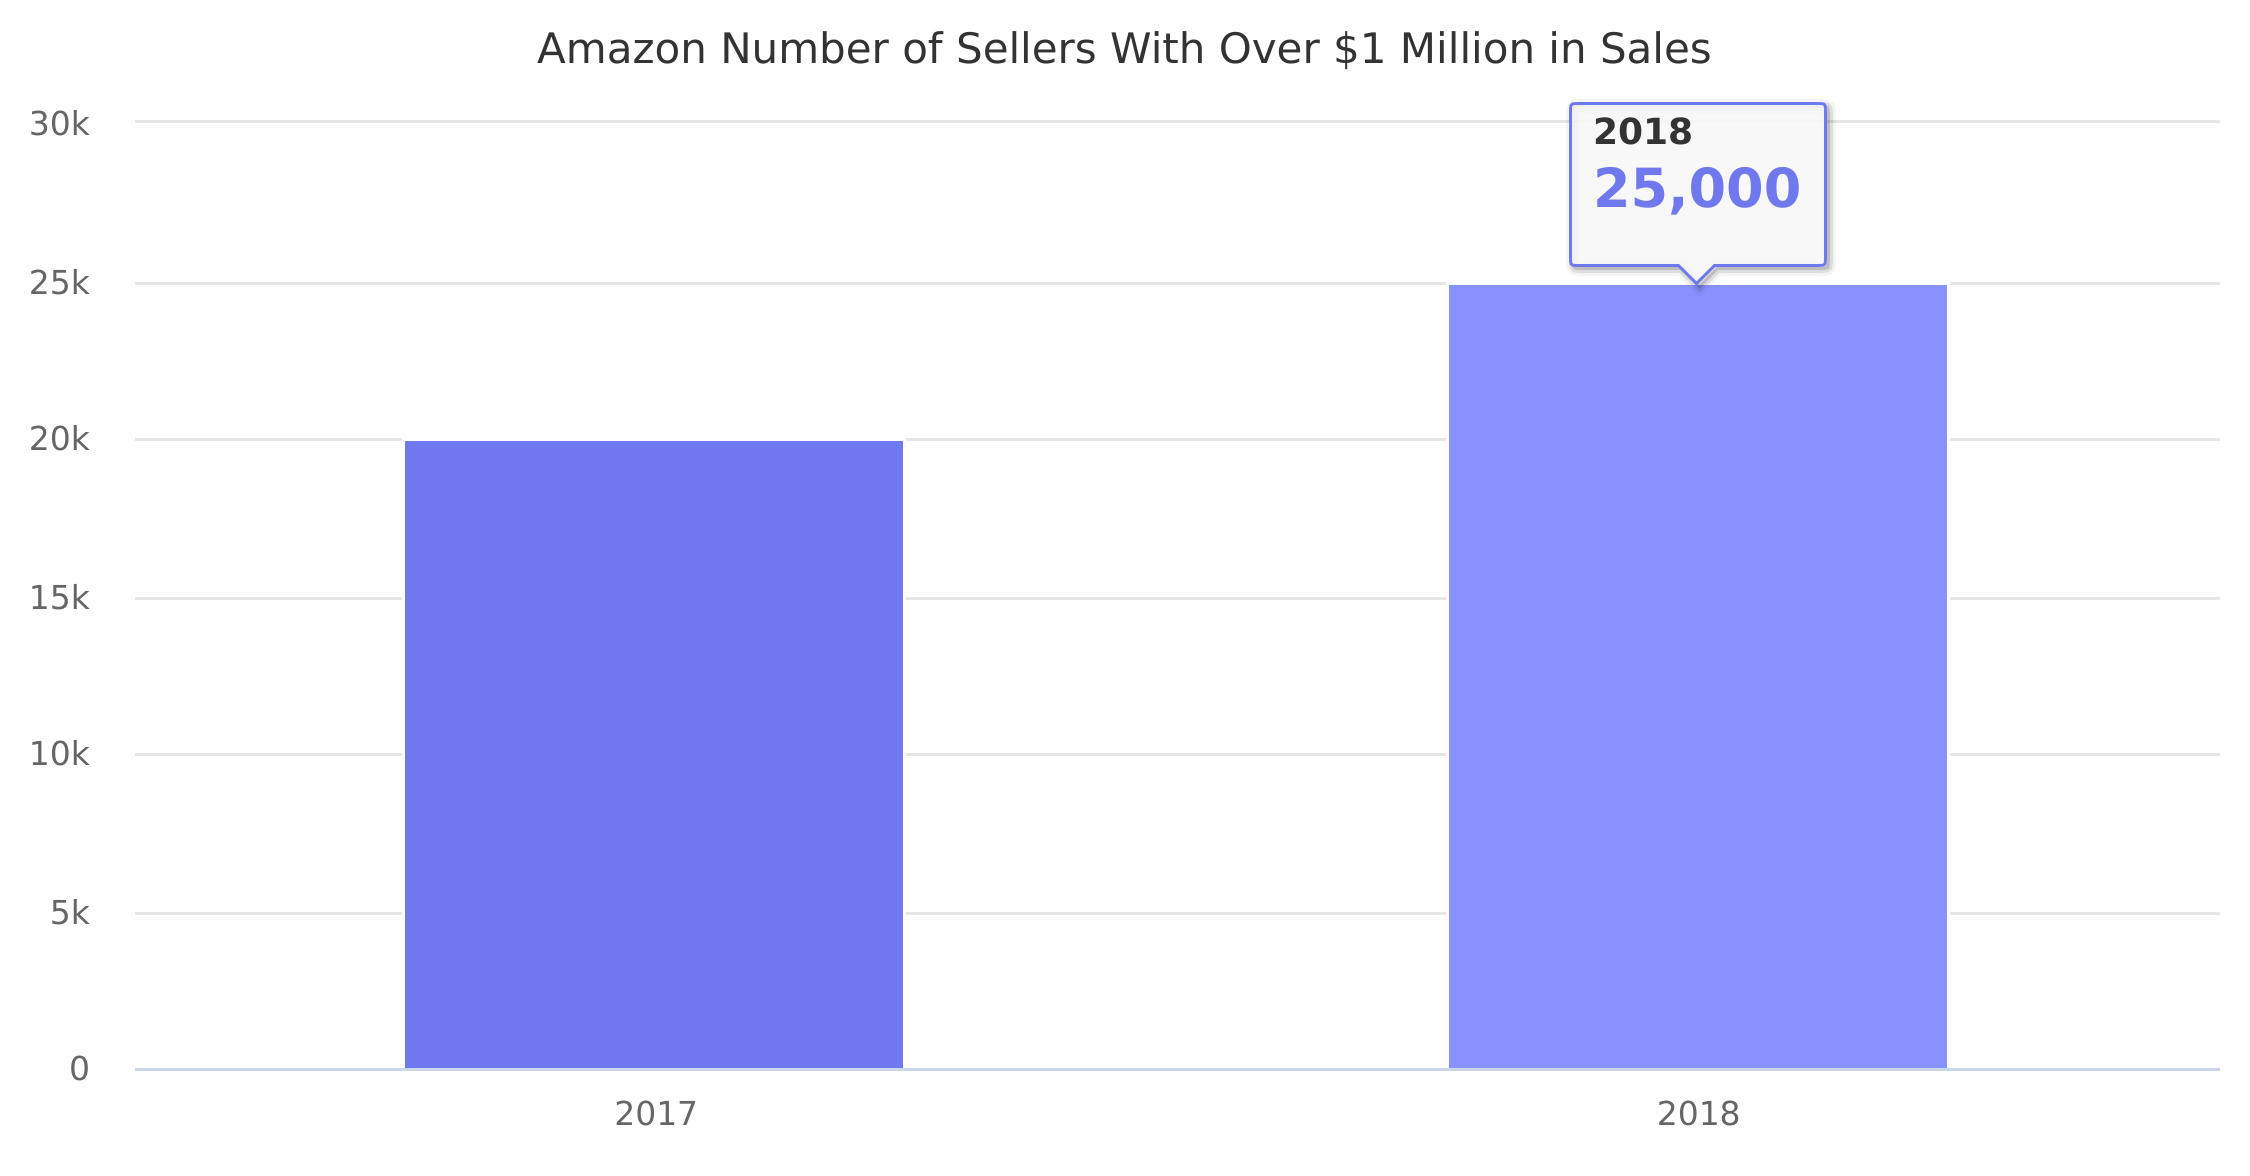 Amazon Number of Sellers With Over $1 Million in Sales 2017-2018